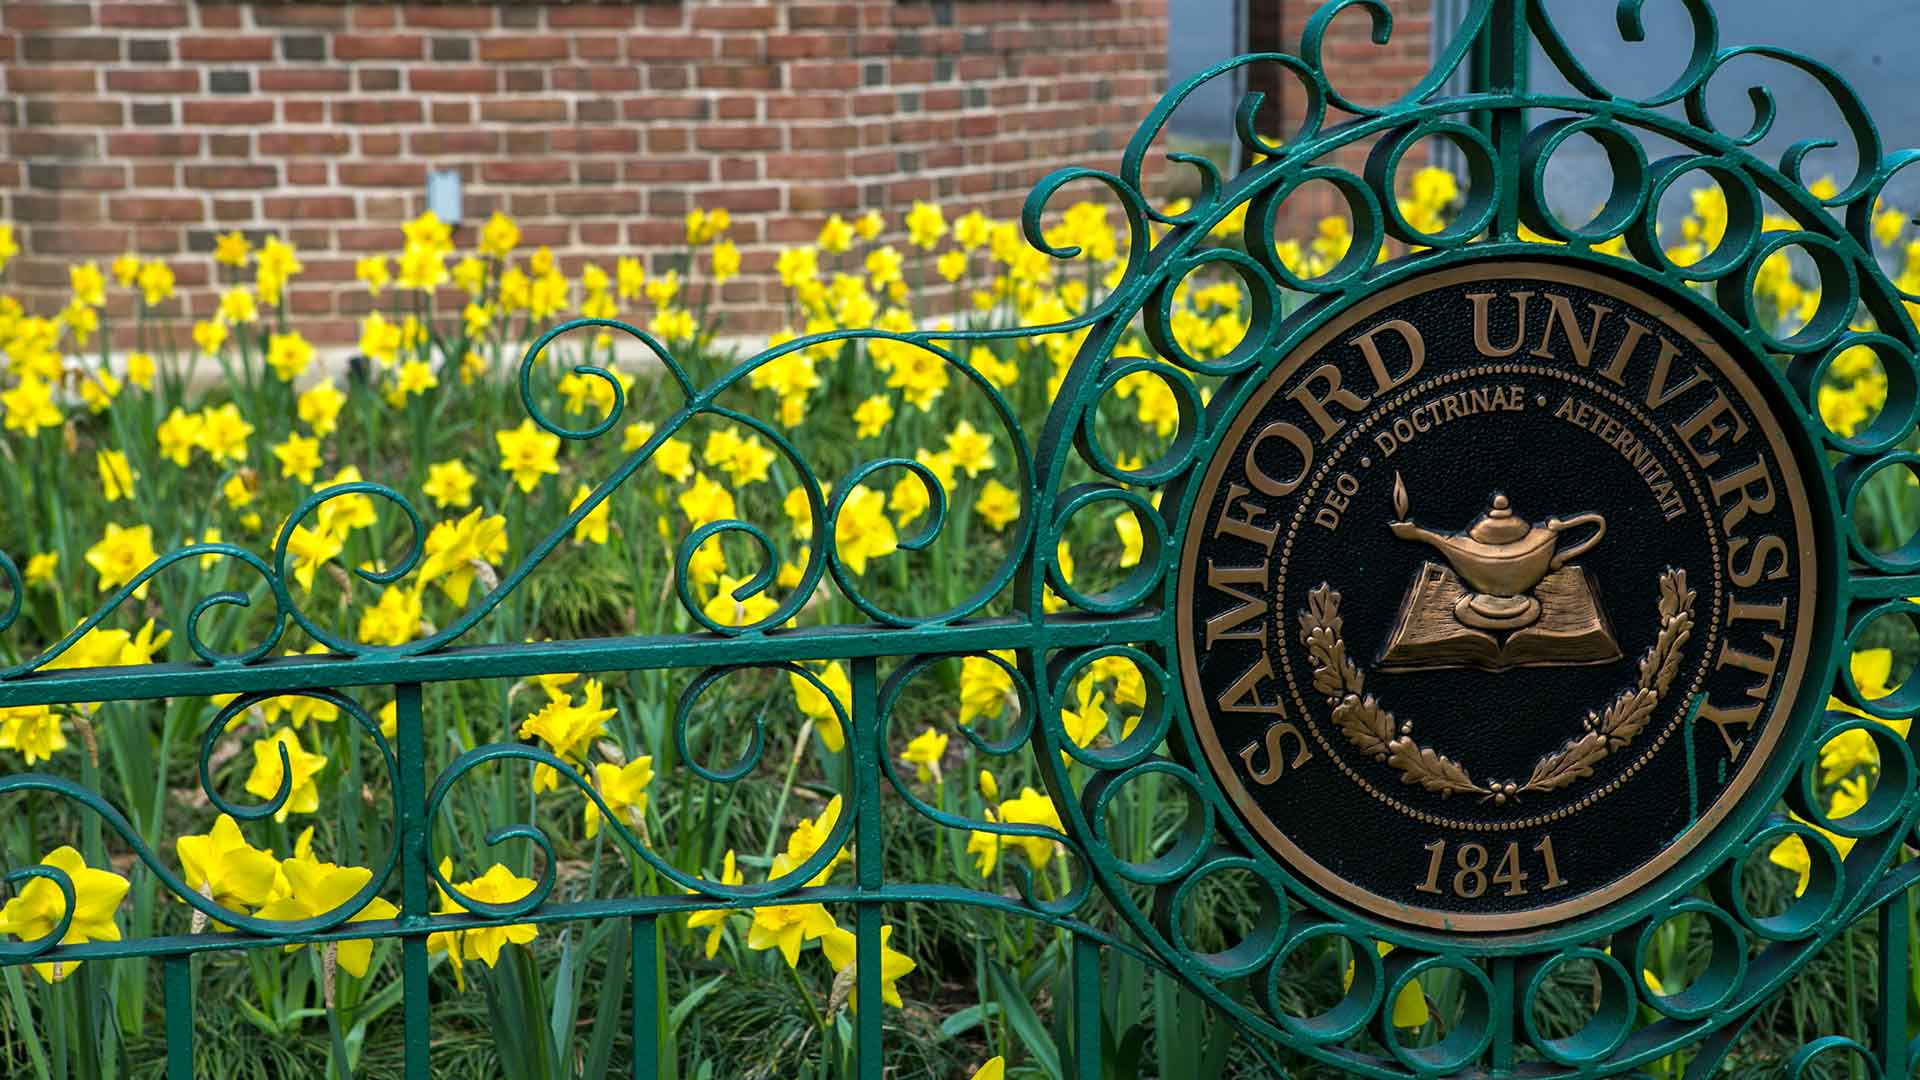 university seal and daffodils